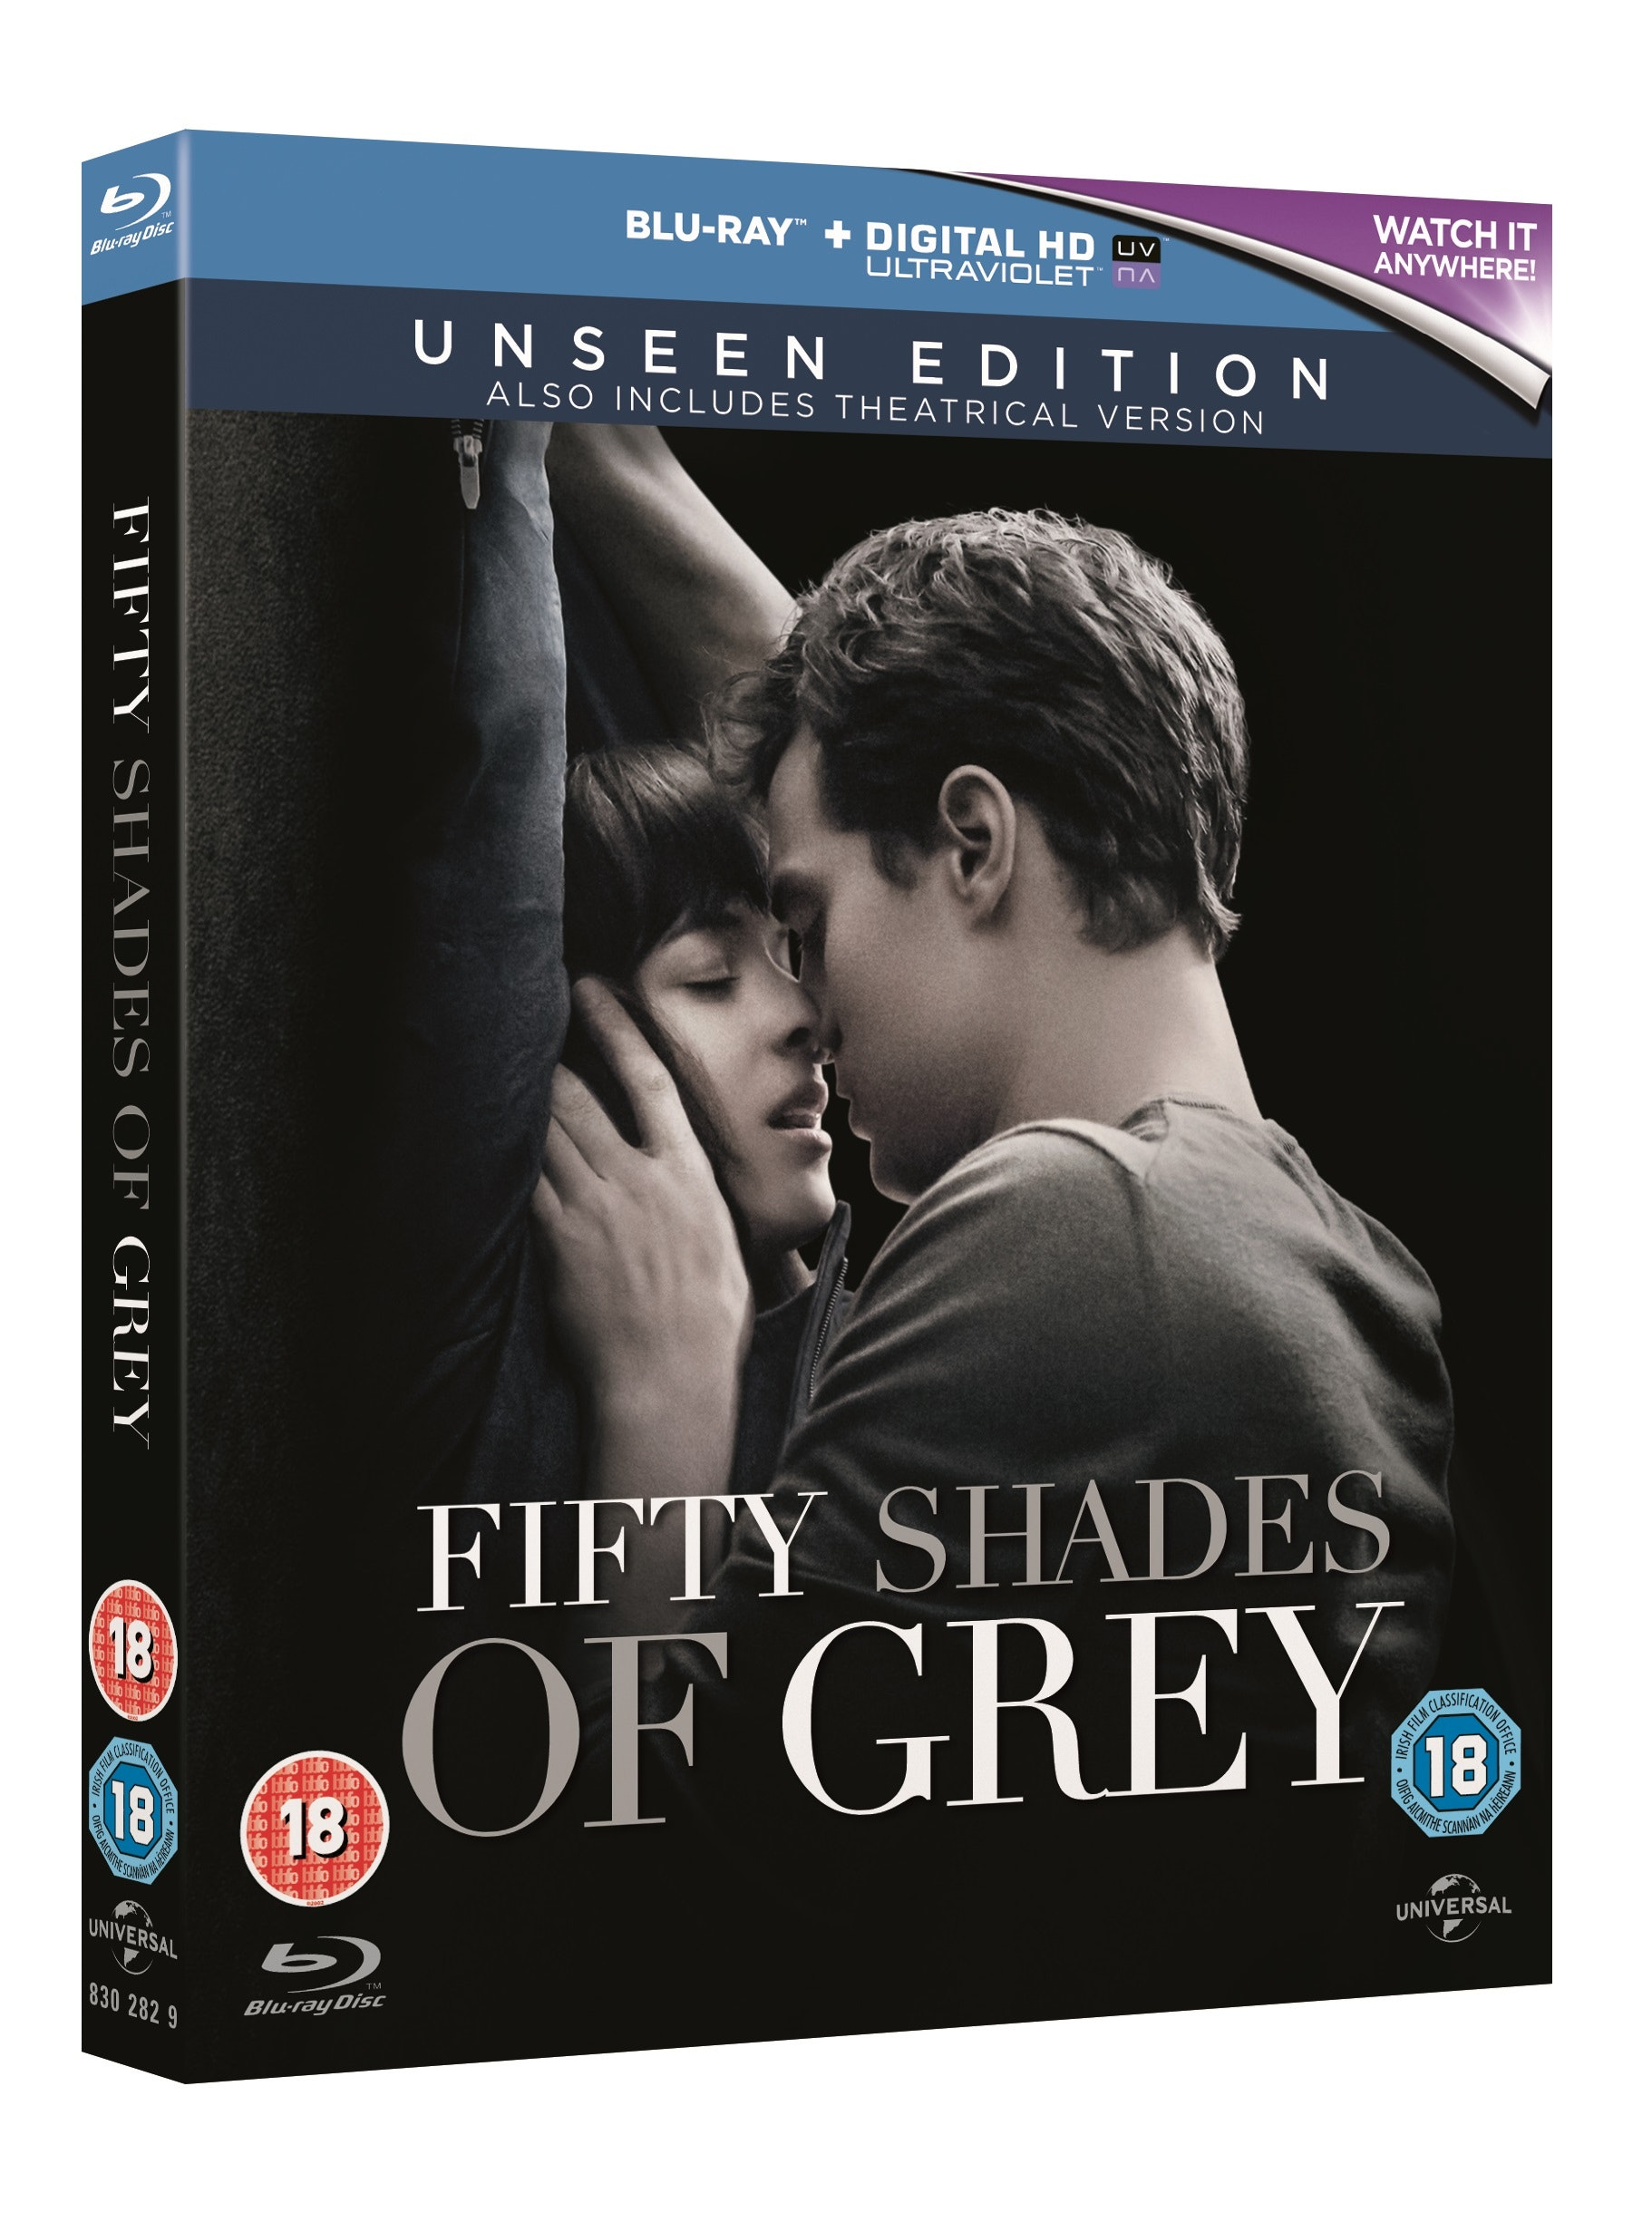 Fifty shades of grey 3d blu ray packshot